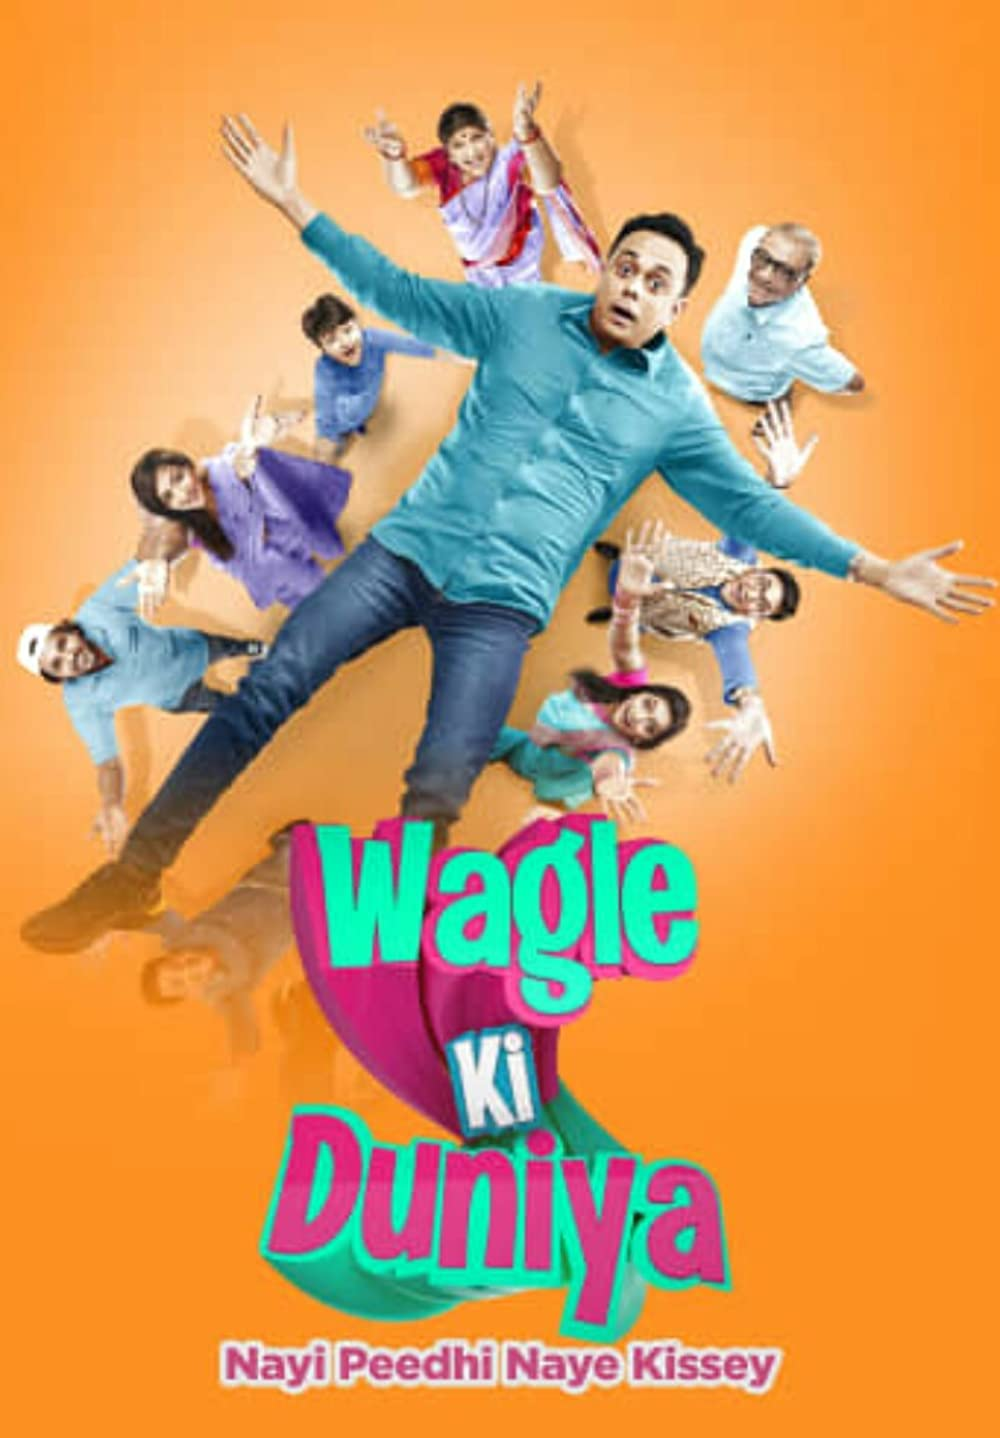 Wagle Ki Duniya 2021 S01 Hindi Complete Sonyliv Original Web Series 850MB HDRip Download